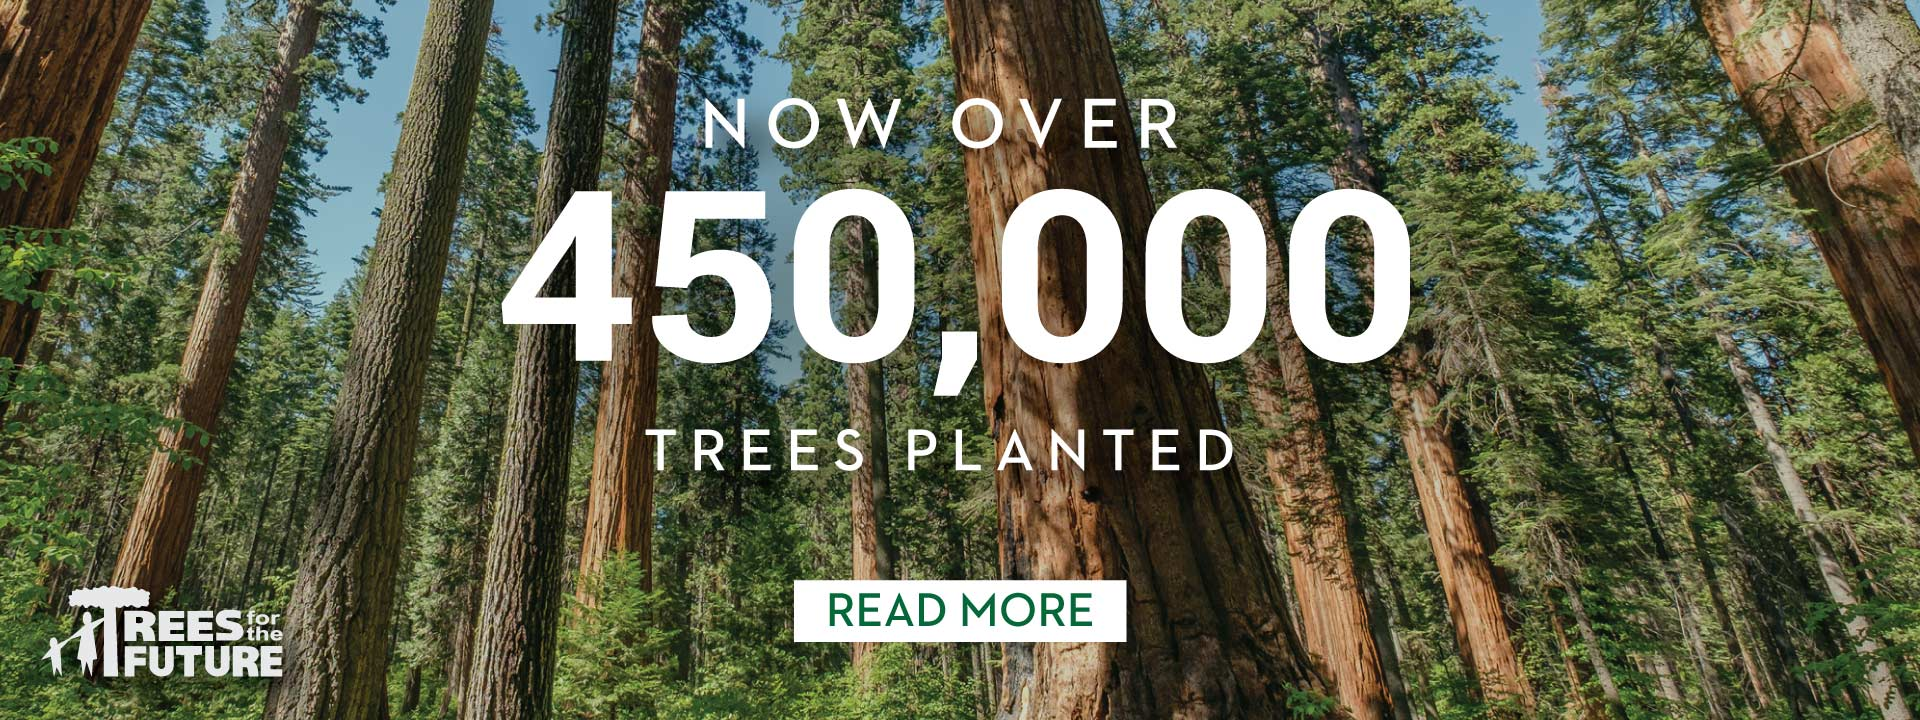 450,000 Trees Planted